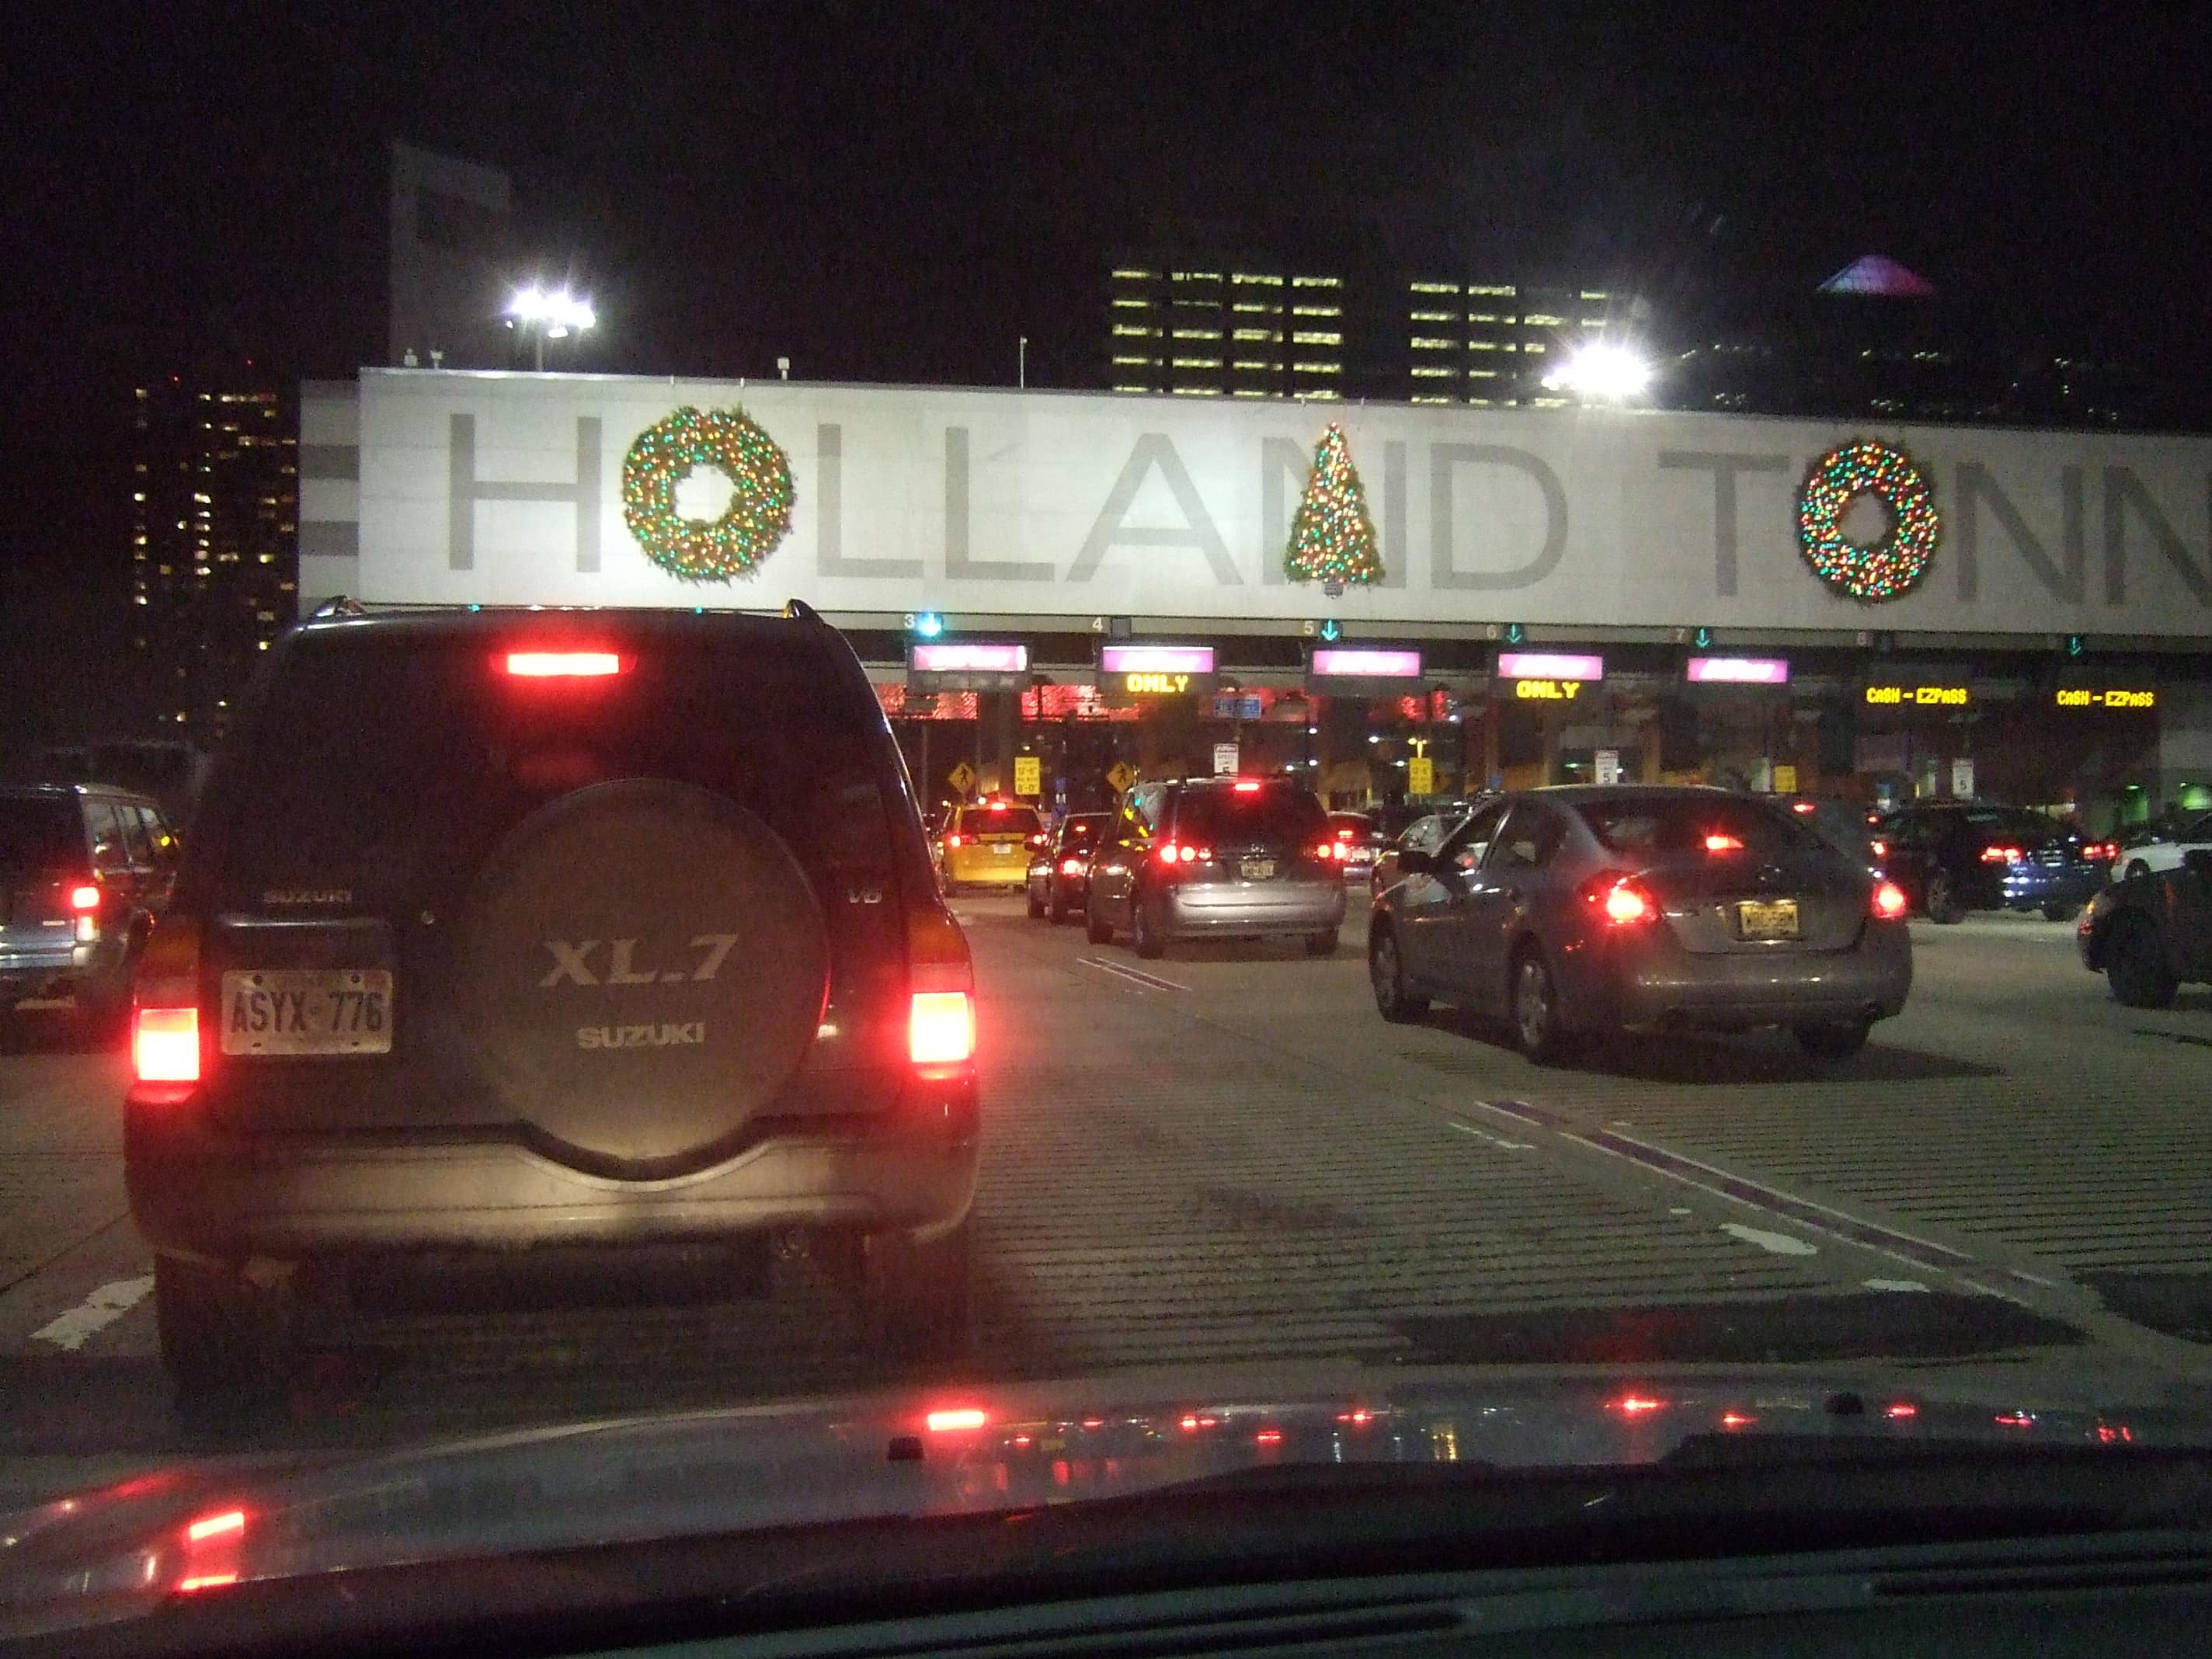 Holland Tunnel in December 2007